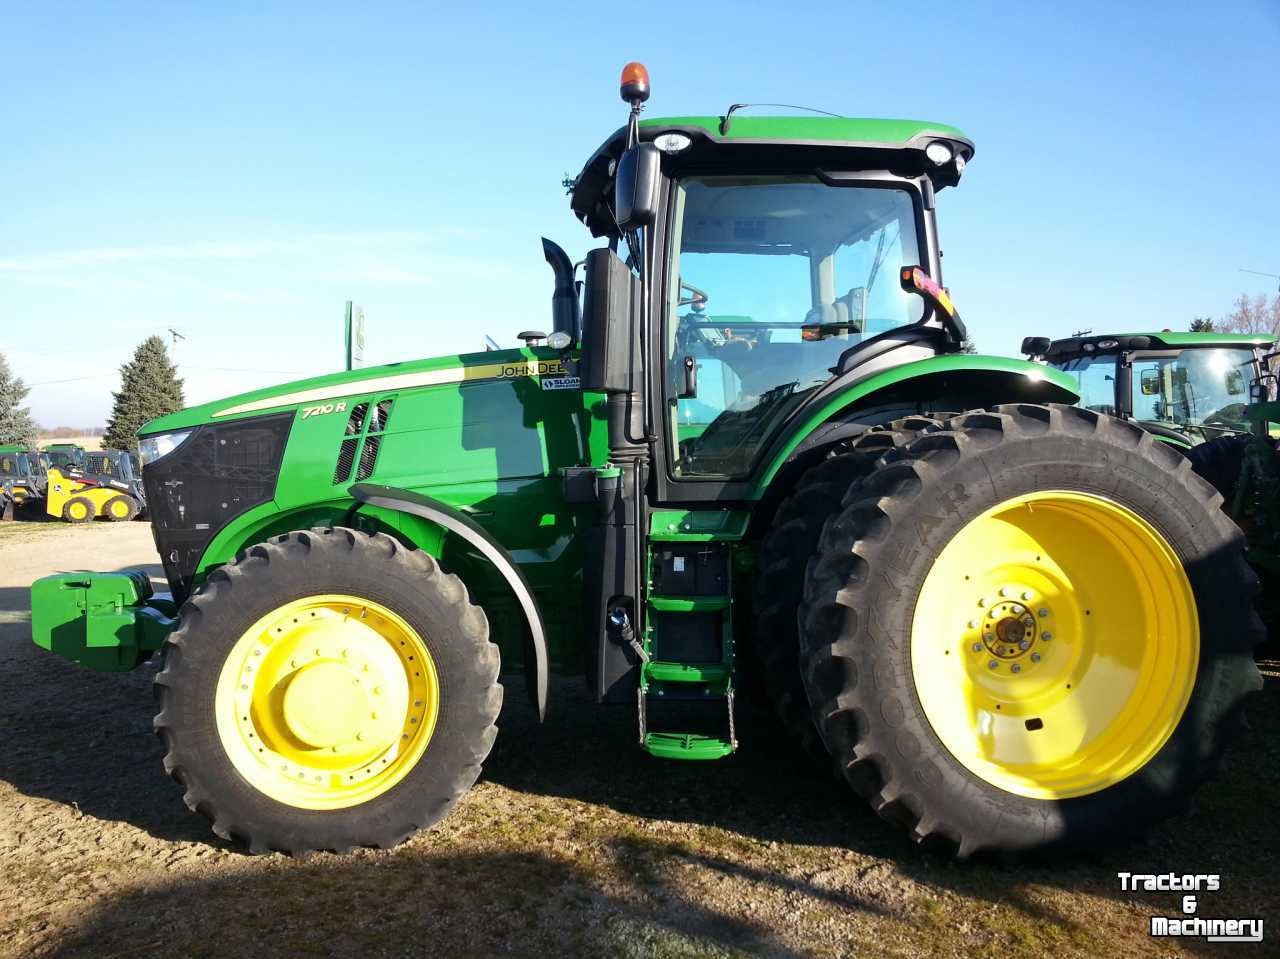 John Deere 7210R COMMAND QUAD 20-20 TRACTOR WI USA - Used ...